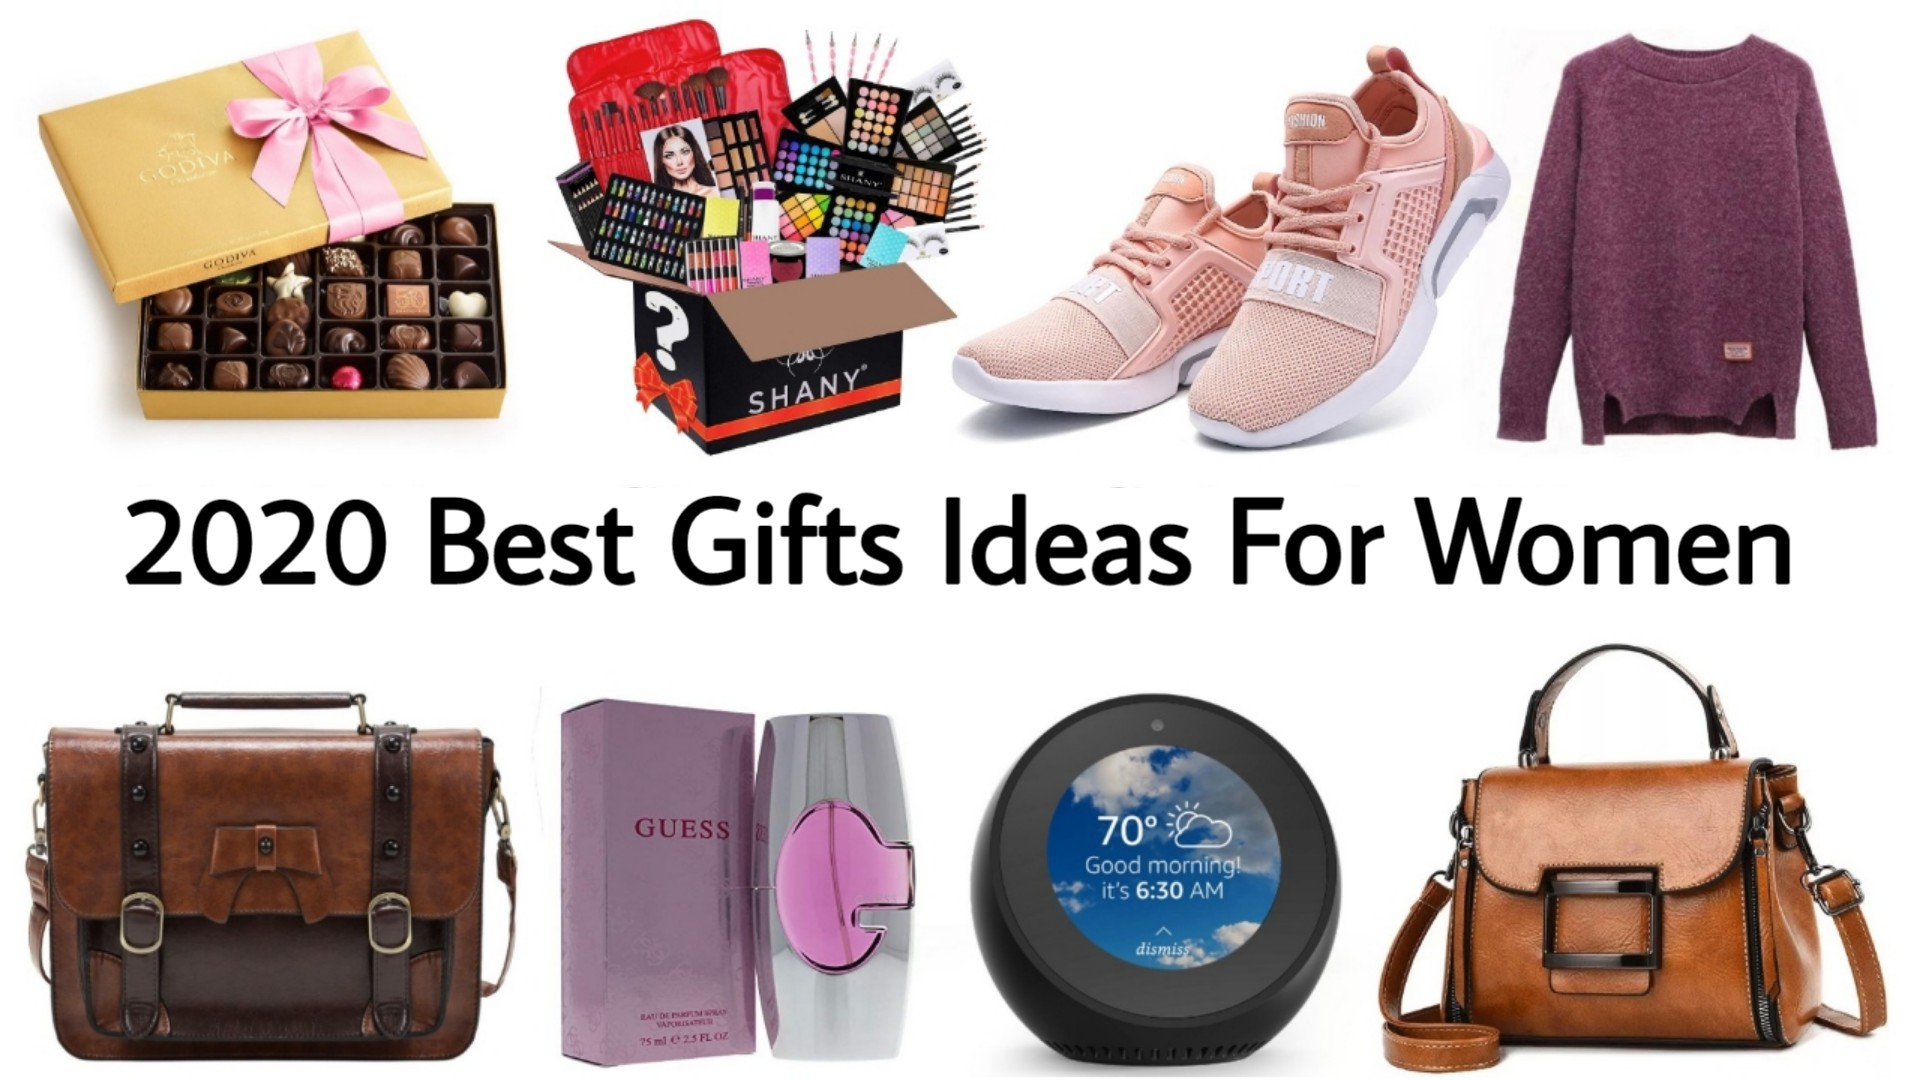 Best Christmas Gifts For Women 2020 Best Christmas Gifts for Women 2020 | Top Gift Ideas for Women